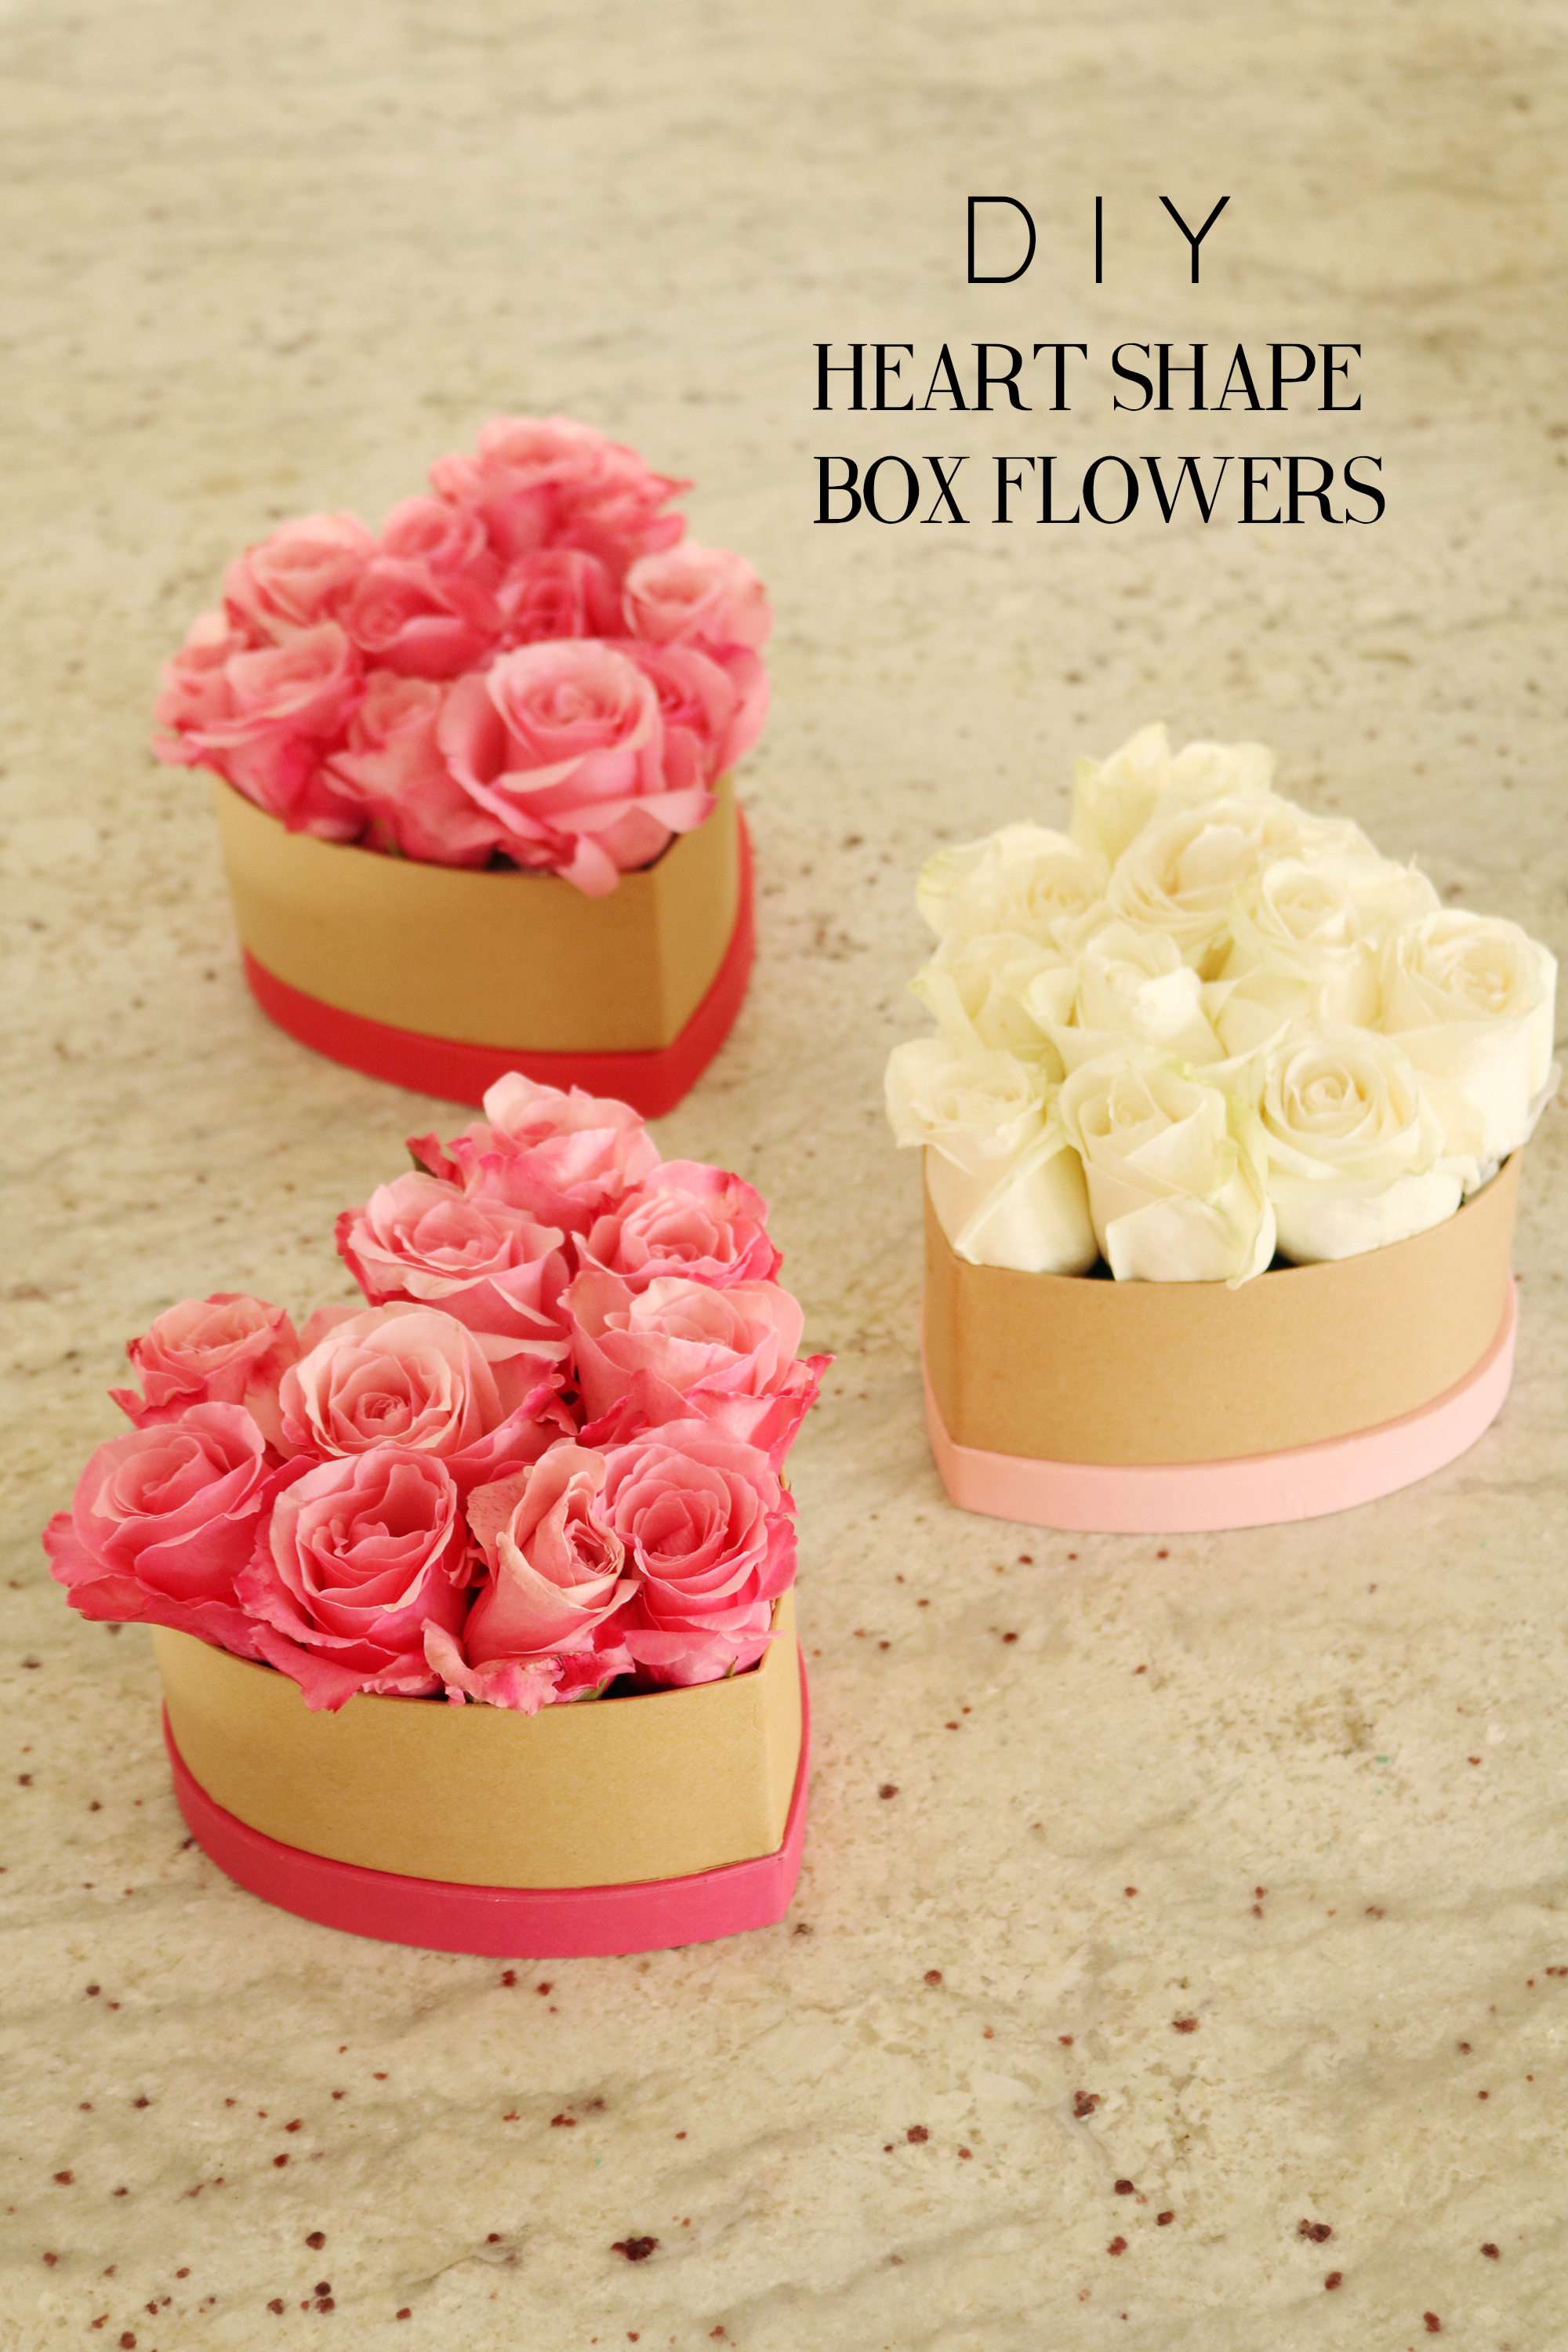 DIY Heart Shape Flower Box for Valentines Day | Box of Flowers || Darling Darleen